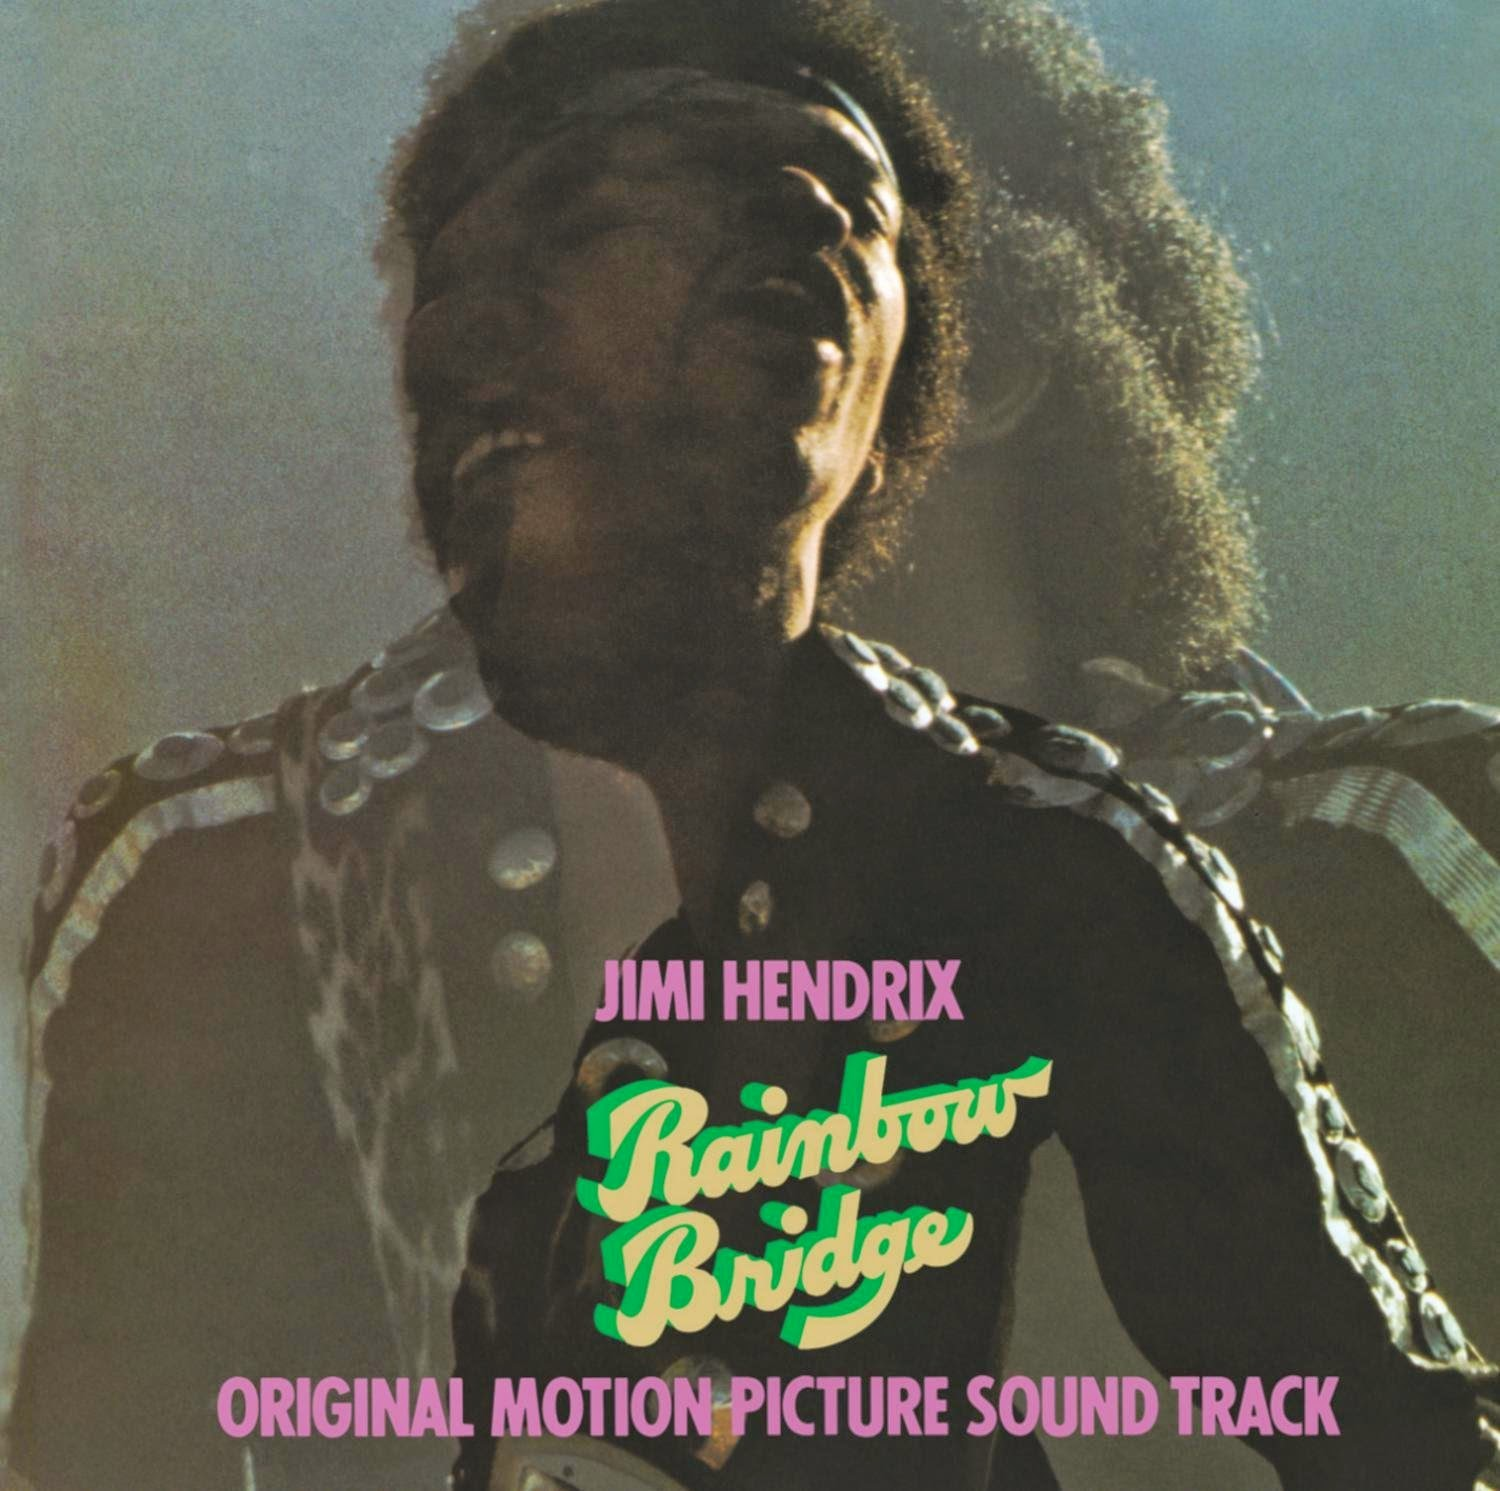 Jimi Hendrix's Rainbow Bridge